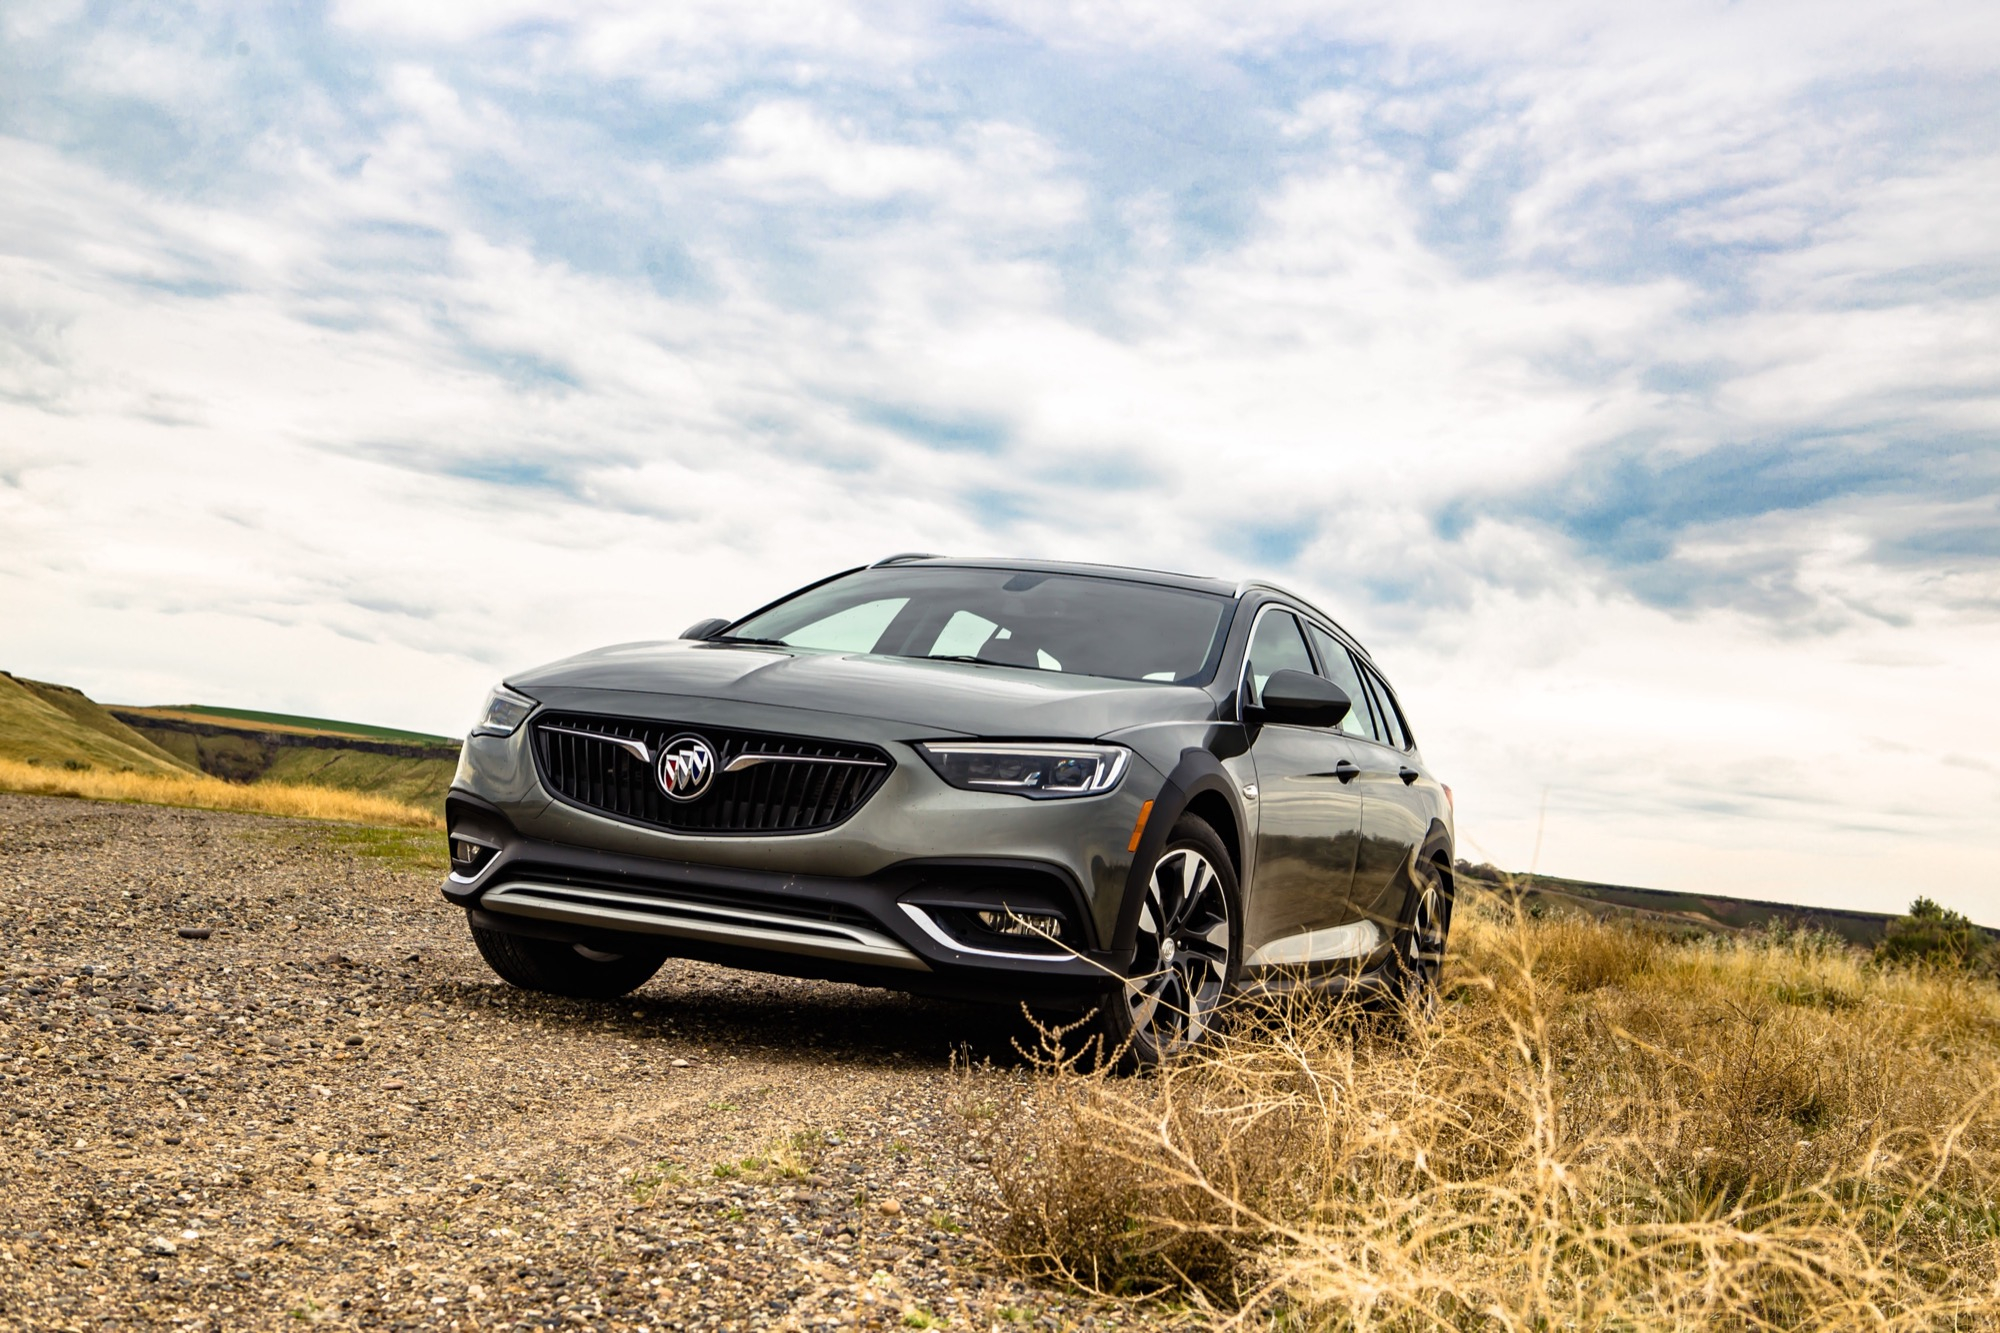 Does Buick Even Want To Sell The Regal Tourx? | Gm Authority 2021 Buick Regal Tourx Discontinued, Mpg, Engine